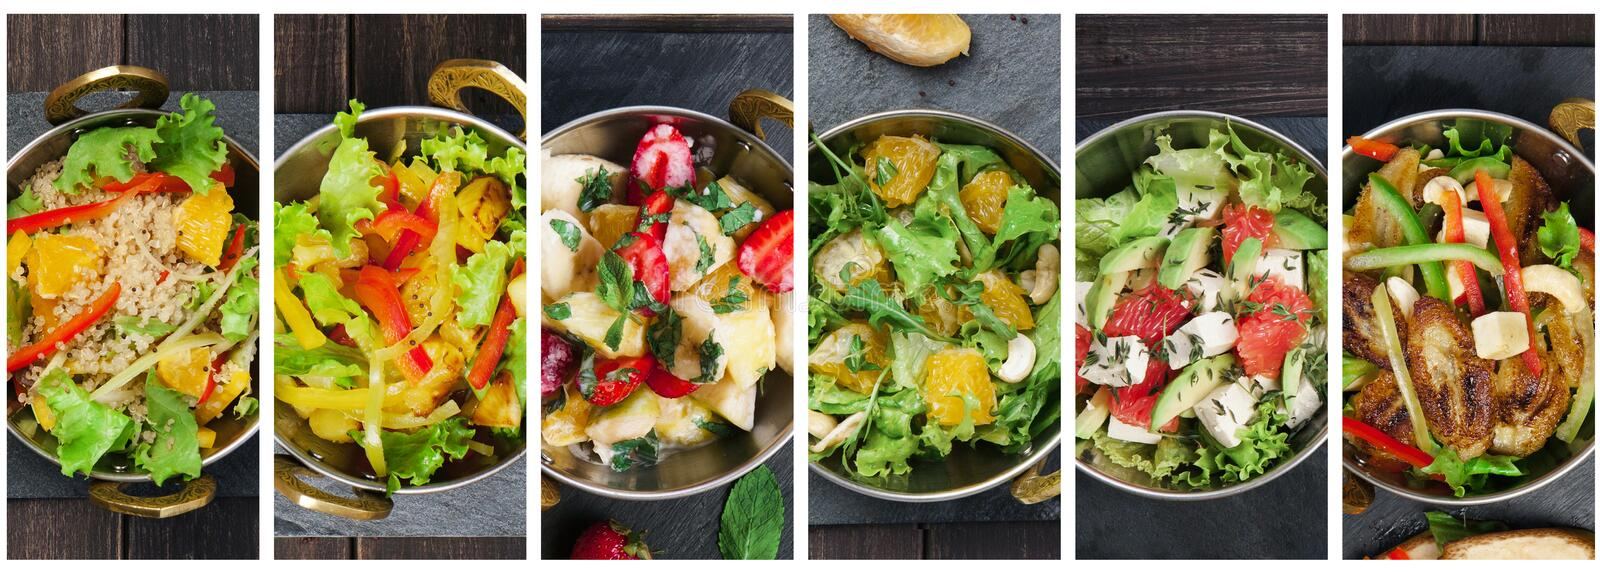 Collage of various plates of salad kinds royalty free stock photo